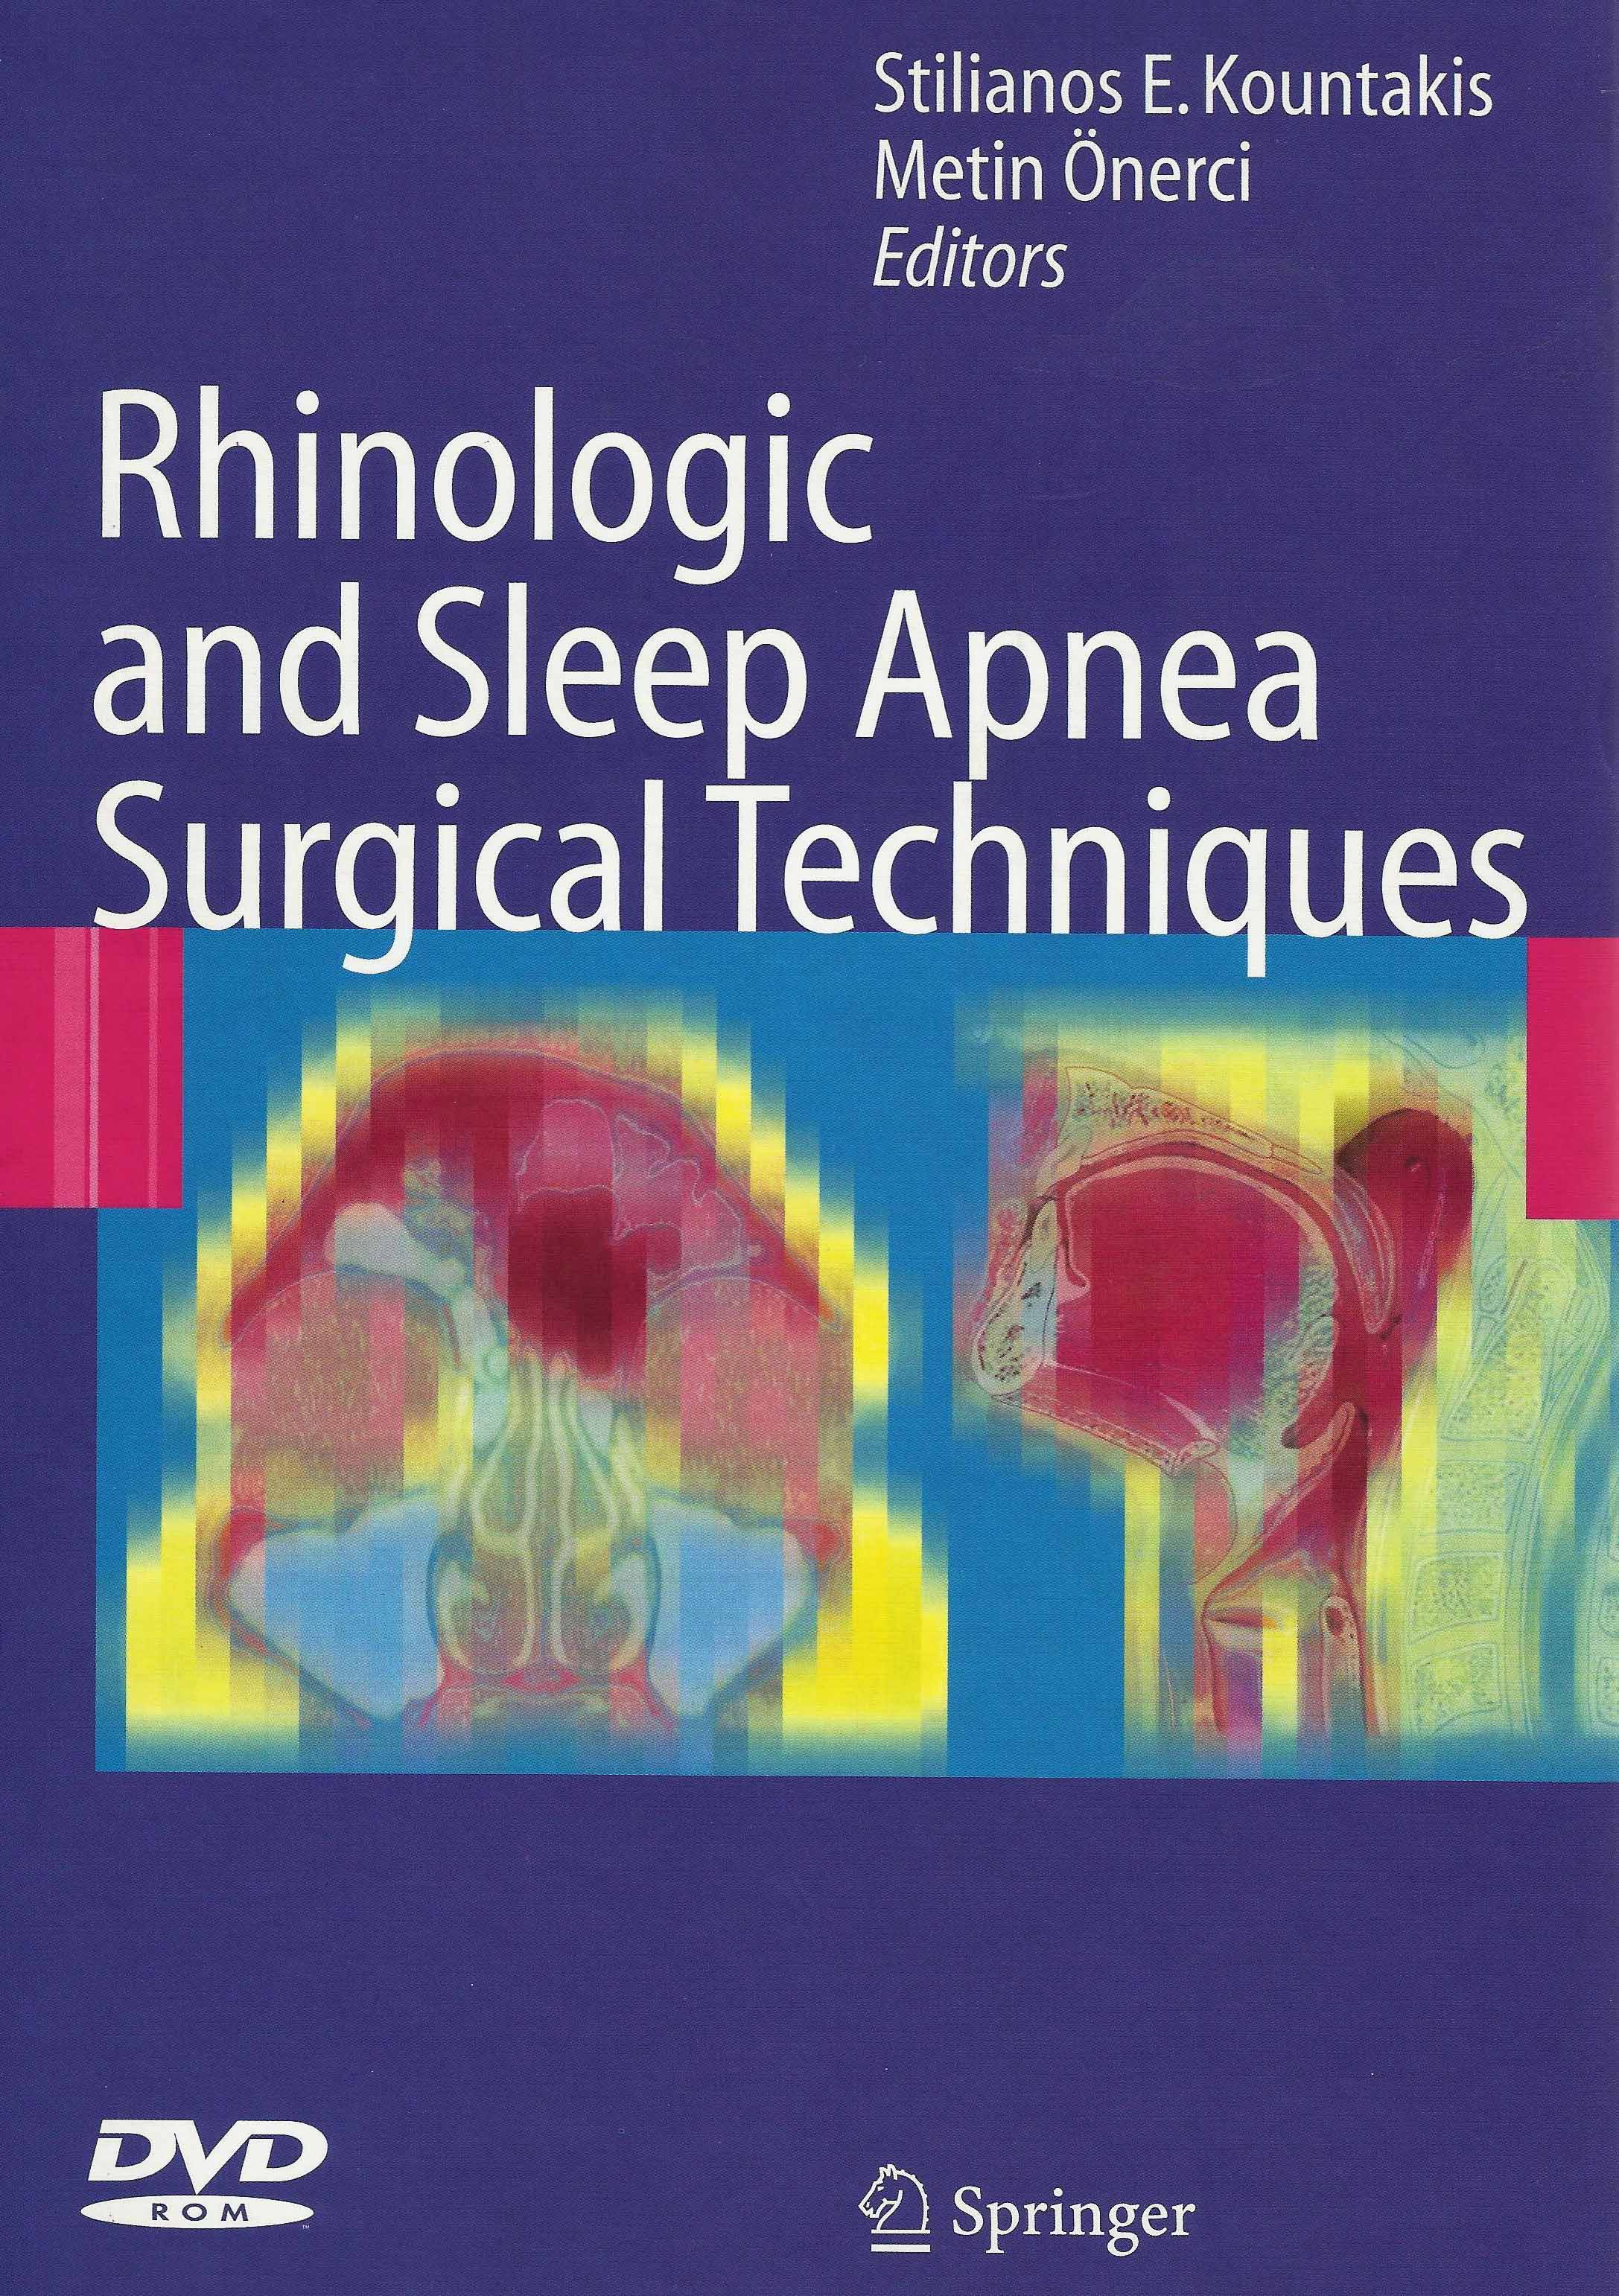 RHNOLOGİC AND SLEEP APNEA SURGİCAL TECHNİQUES1